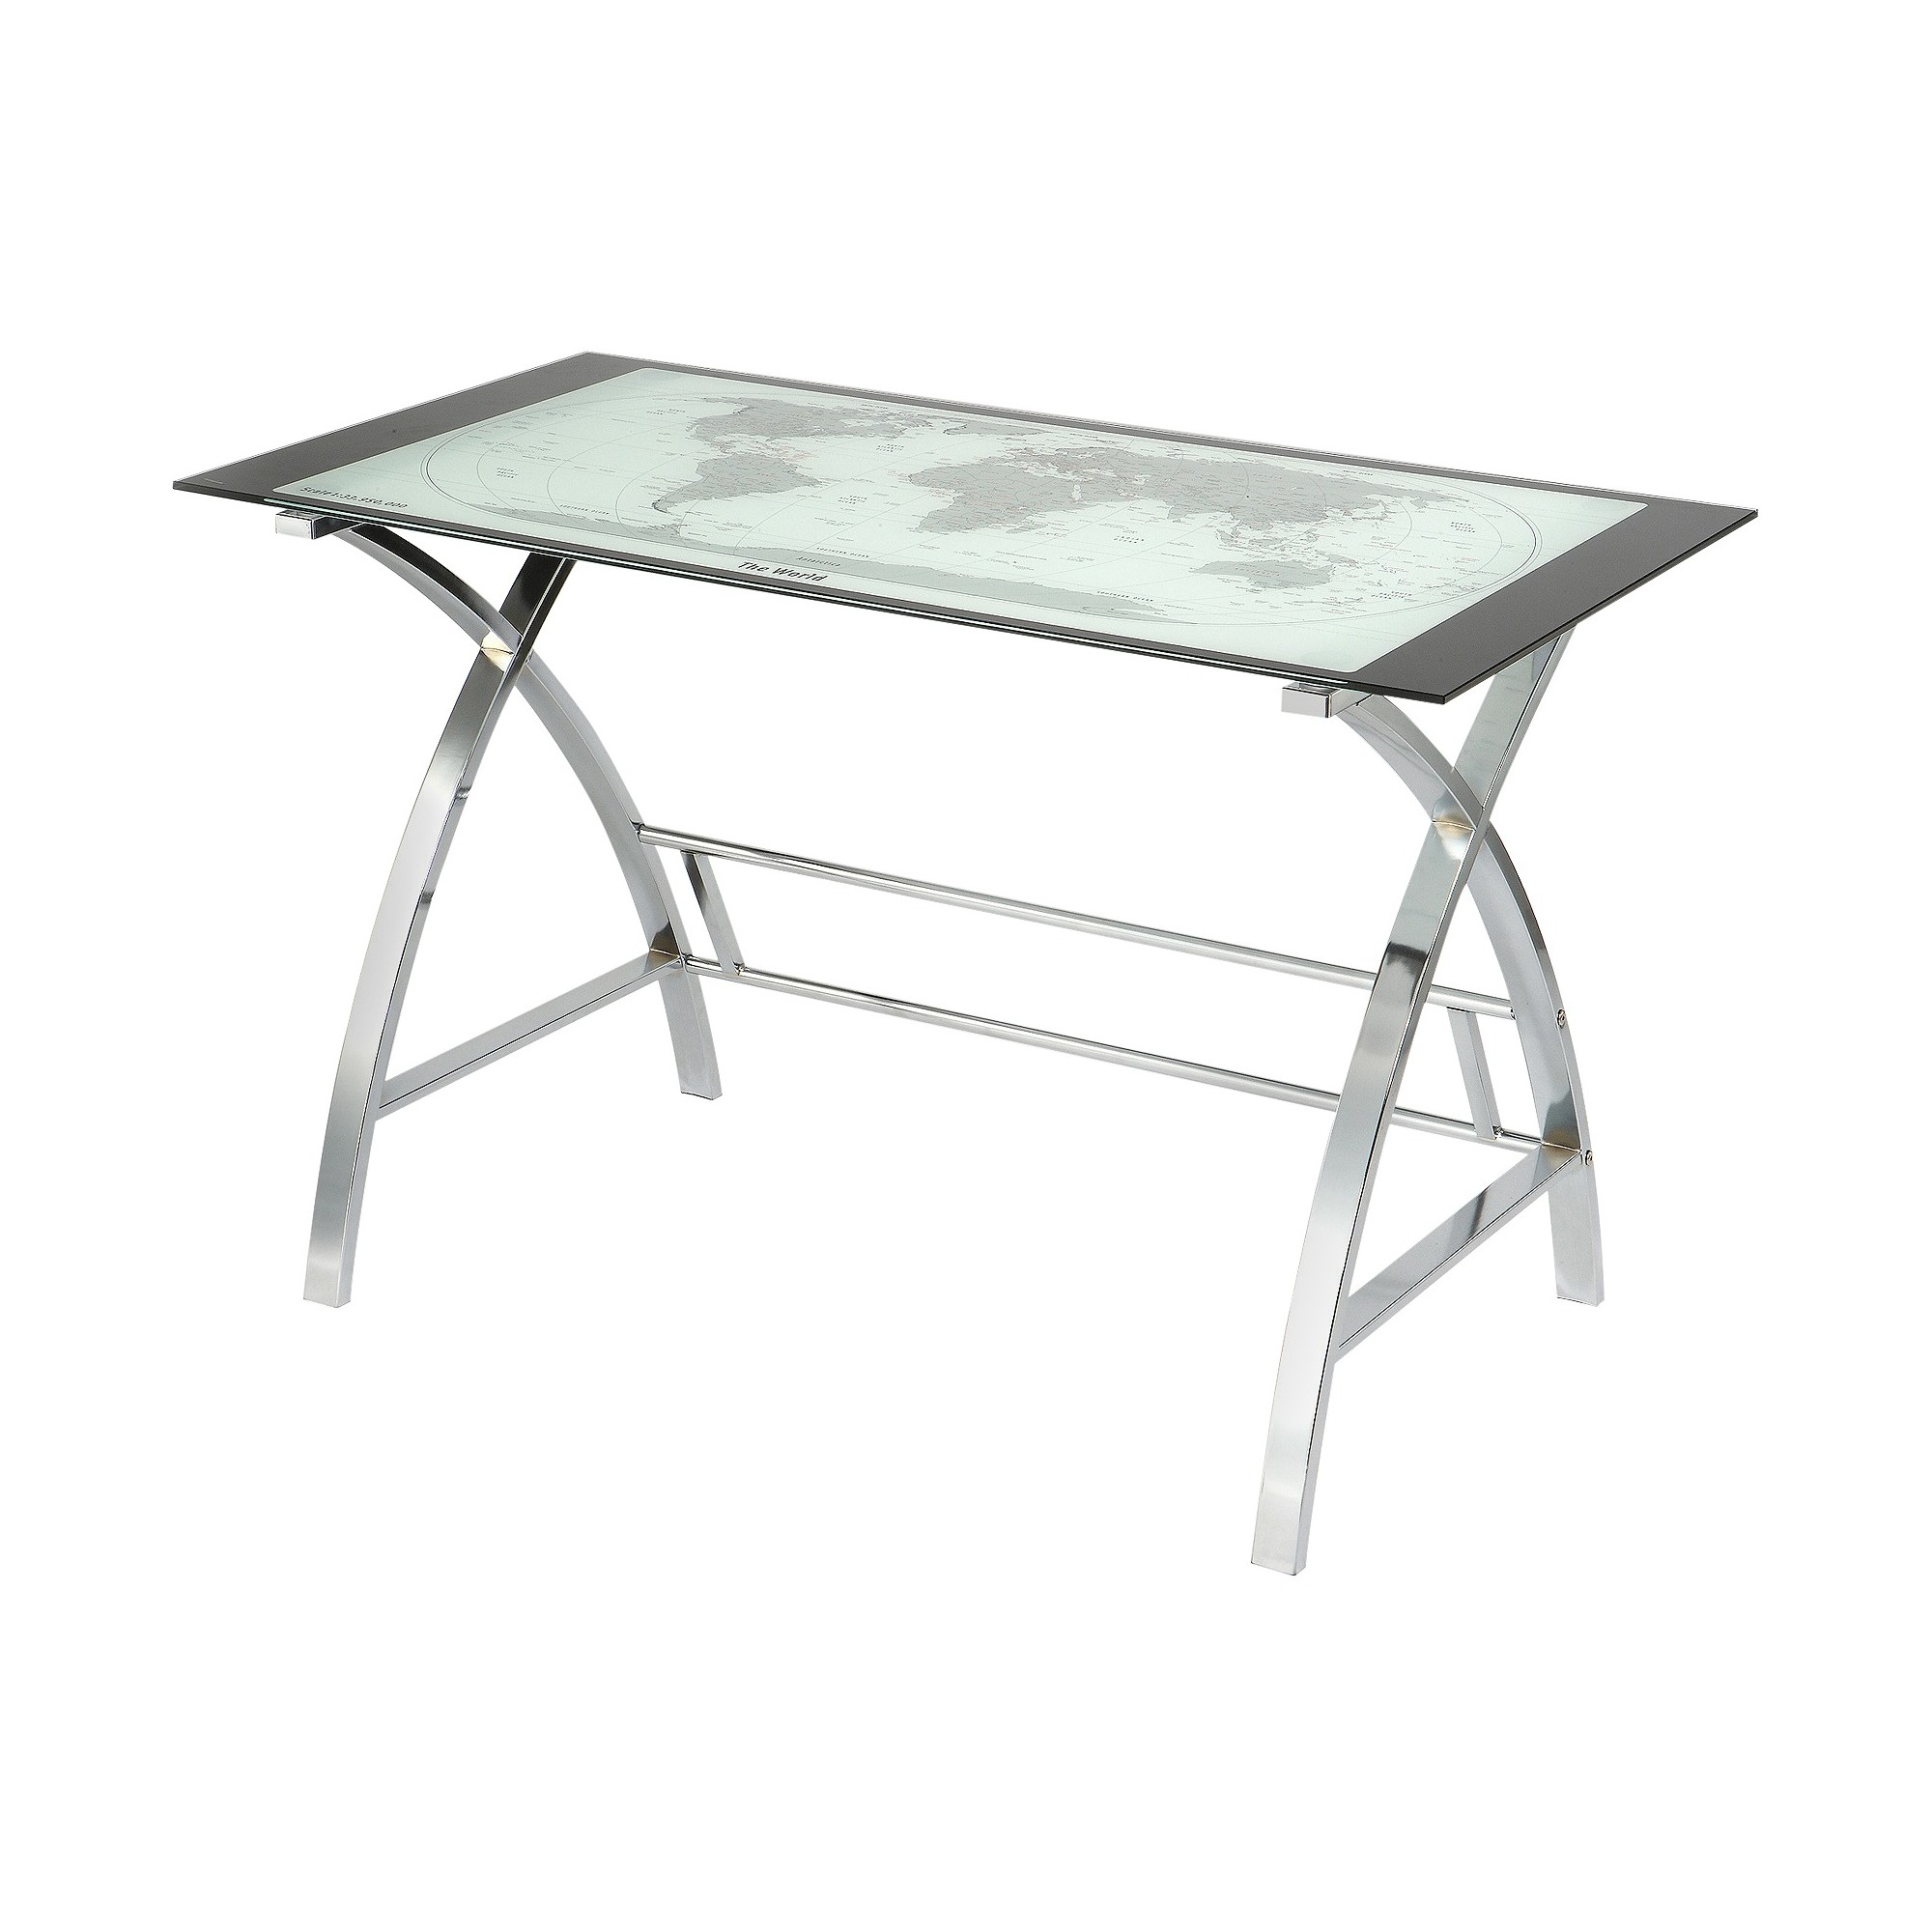 Christopher World Map Metal Computer Desk Silver - Powell Company, Gray